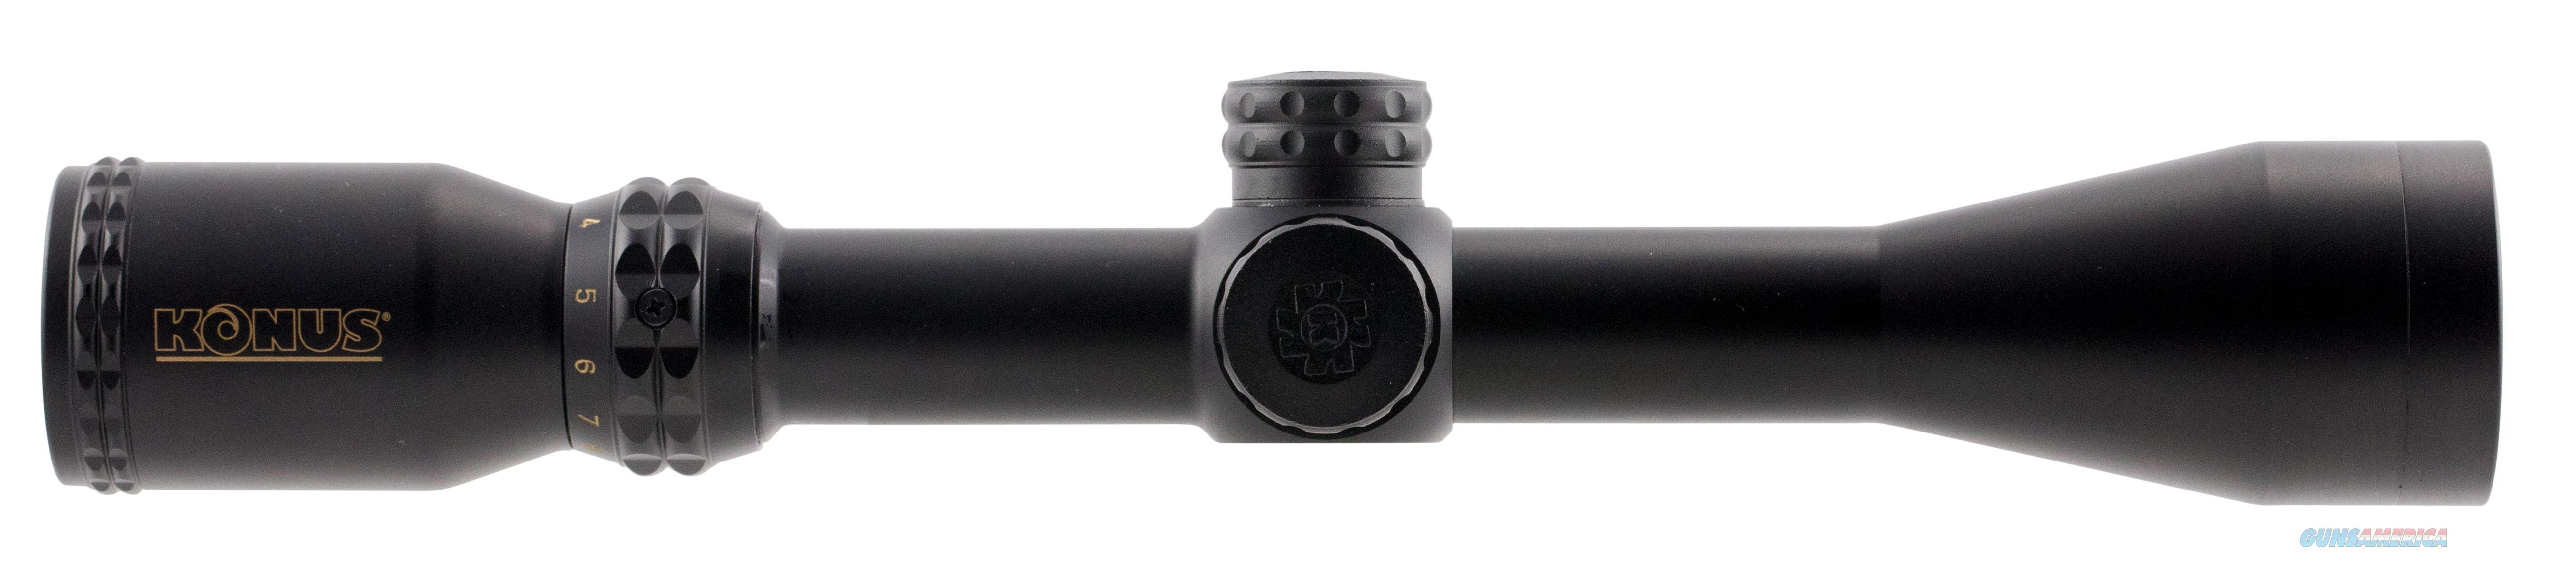 "Konus 7276 Konuspro 3-9X 40Mm Obj 37-12.3 Ft @ 100 Yds Fov 1"" Tube Black Matte Dual Illuminated Engraved Ballistic 550 7276  Non-Guns > Scopes/Mounts/Rings & Optics > Mounts > Other"